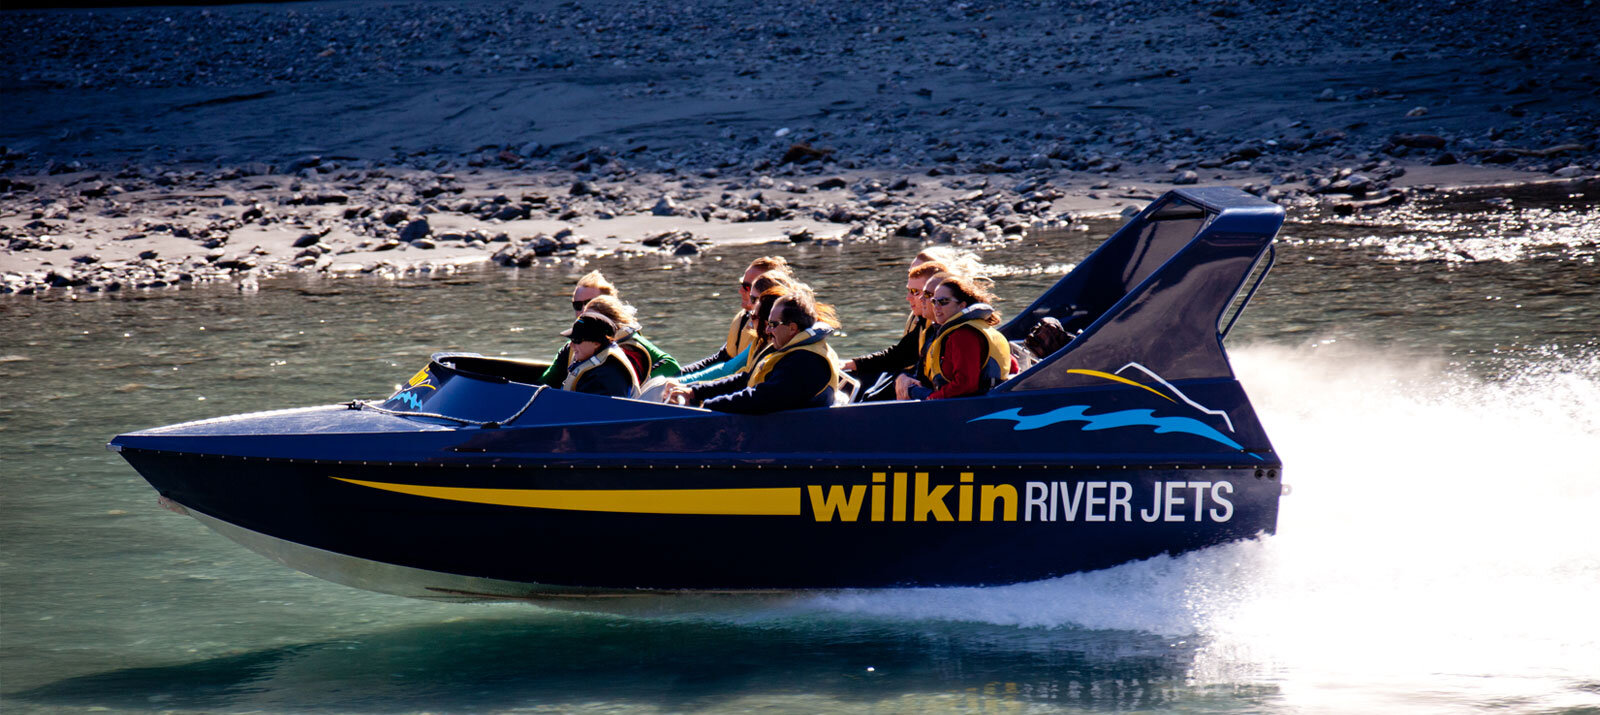 Jet boating within the World Heritage Area - Let Wilkin River Jets and Backcountry Helicopters take you on a personal wilderness journey deep into the 'timeless land' of Makarora, situated close to Wanaka New Zealand. We promise an unforgettable wilderness adventure.Experience the ultimate in shallow water jet boating, skimming along just inches of water on not one, but two rivers - the mighty Wilkin and the Makarora.